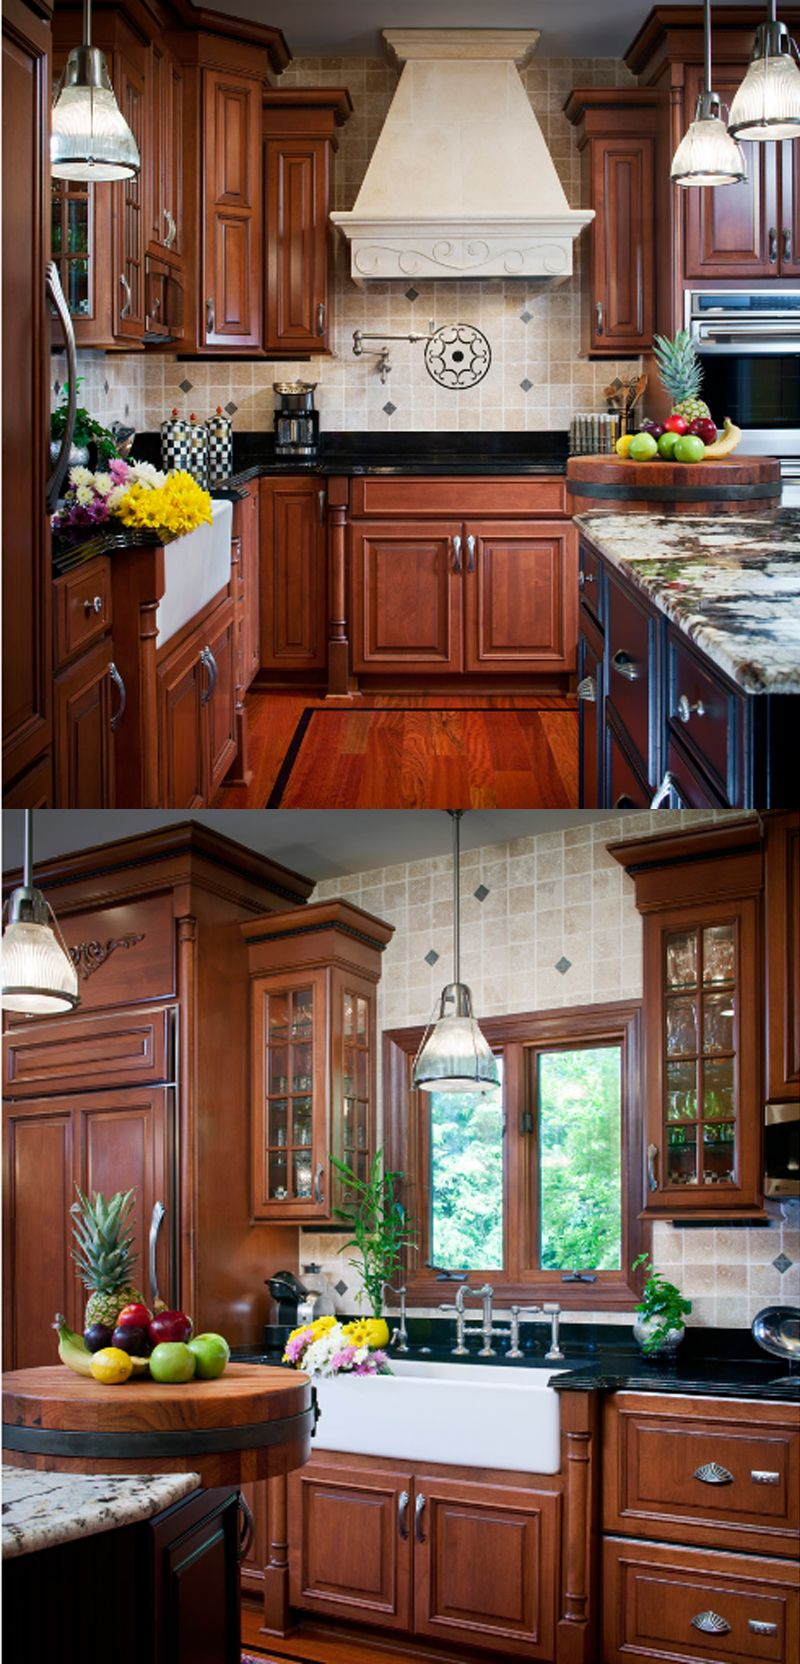 20 best traditional kitchen design ideas how to on best farmhouse kitchen decor ideas and remodel create your dreams id=43633